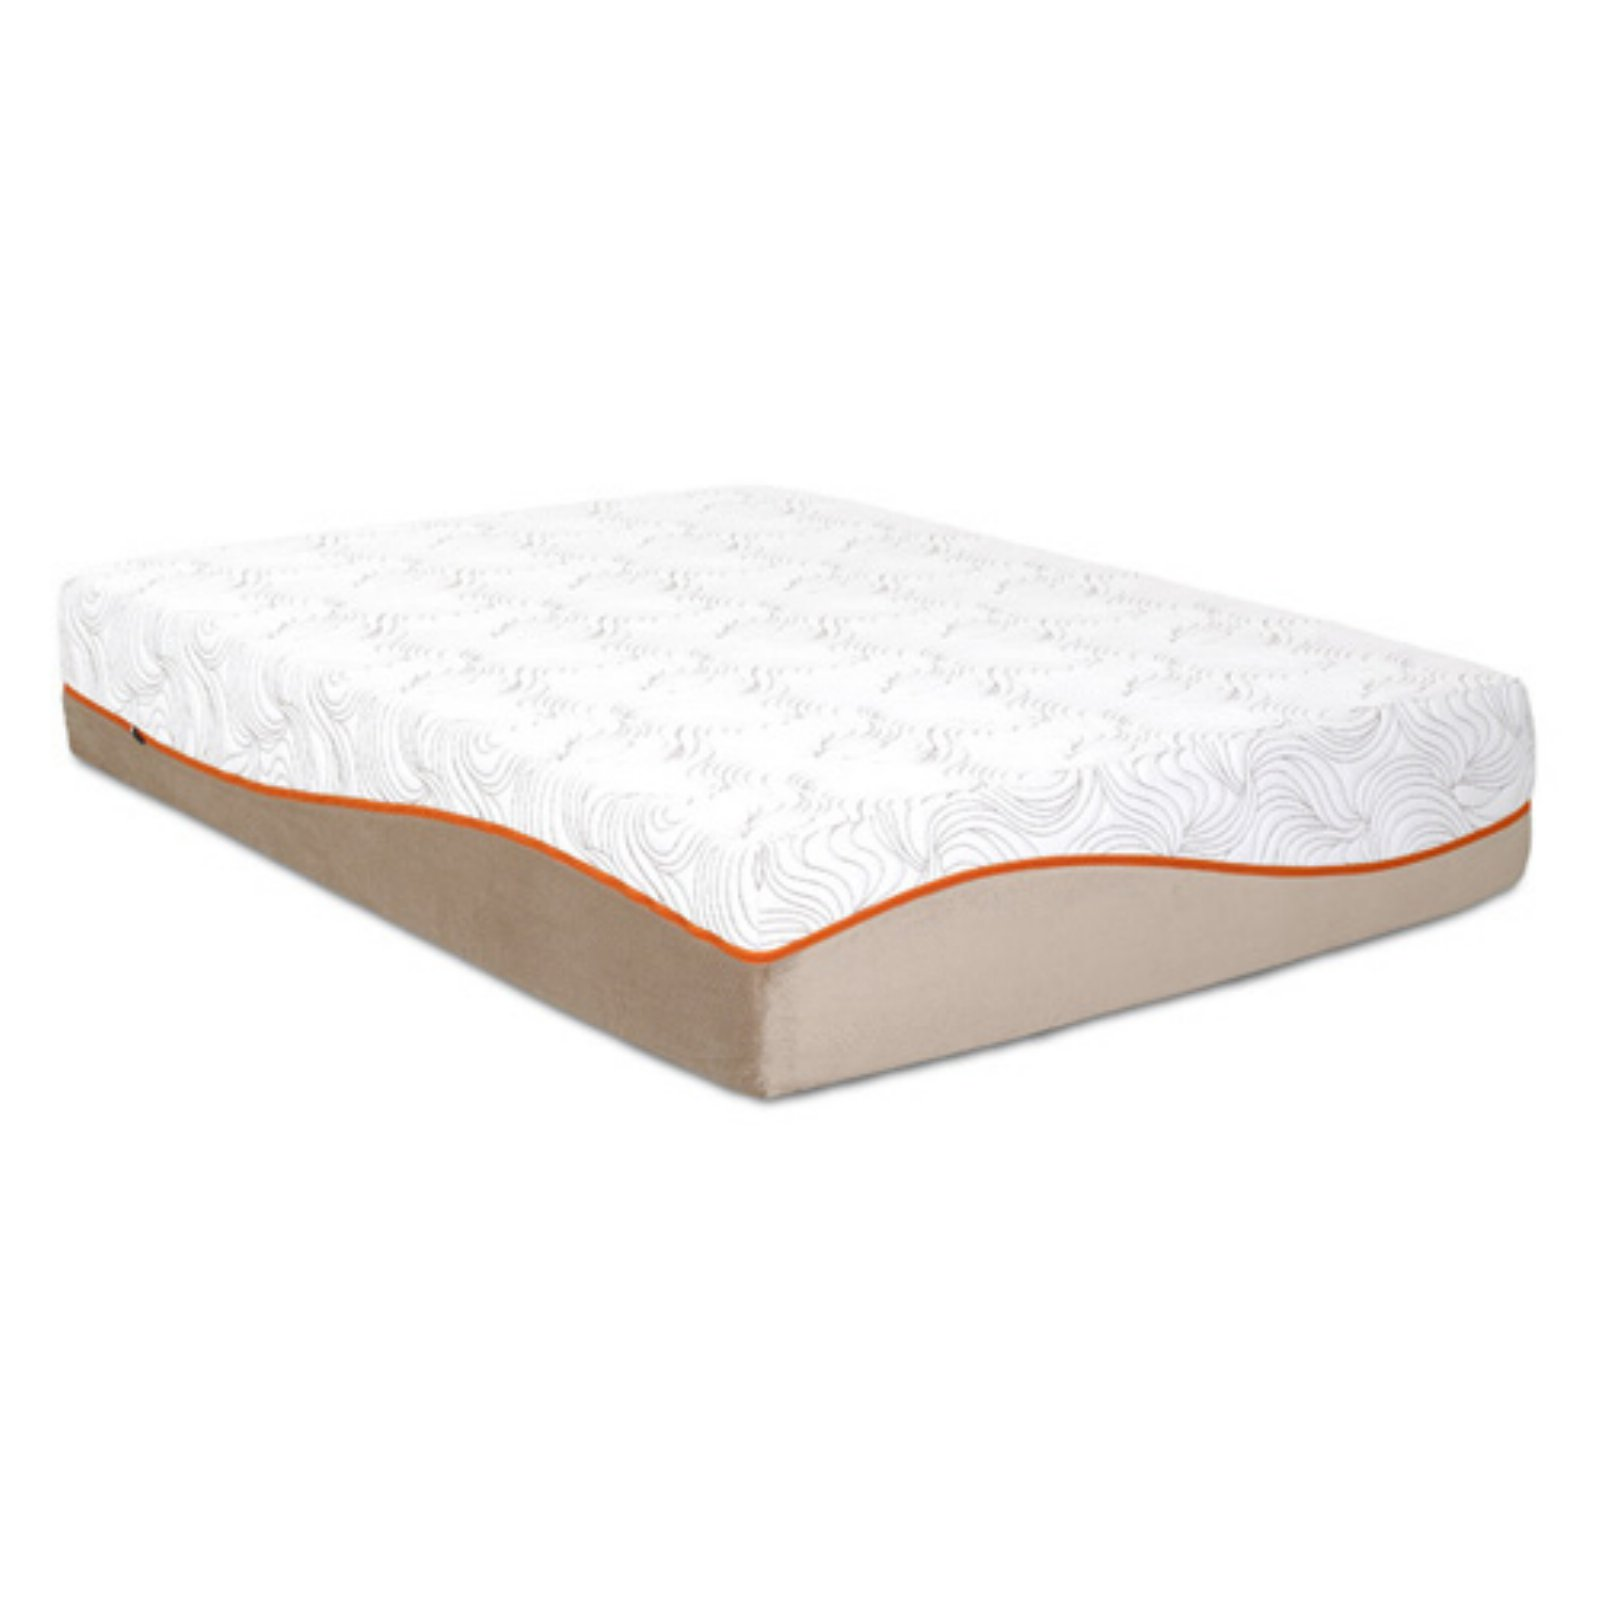 Enso Sleep System Picasso Mattress by Klaussner